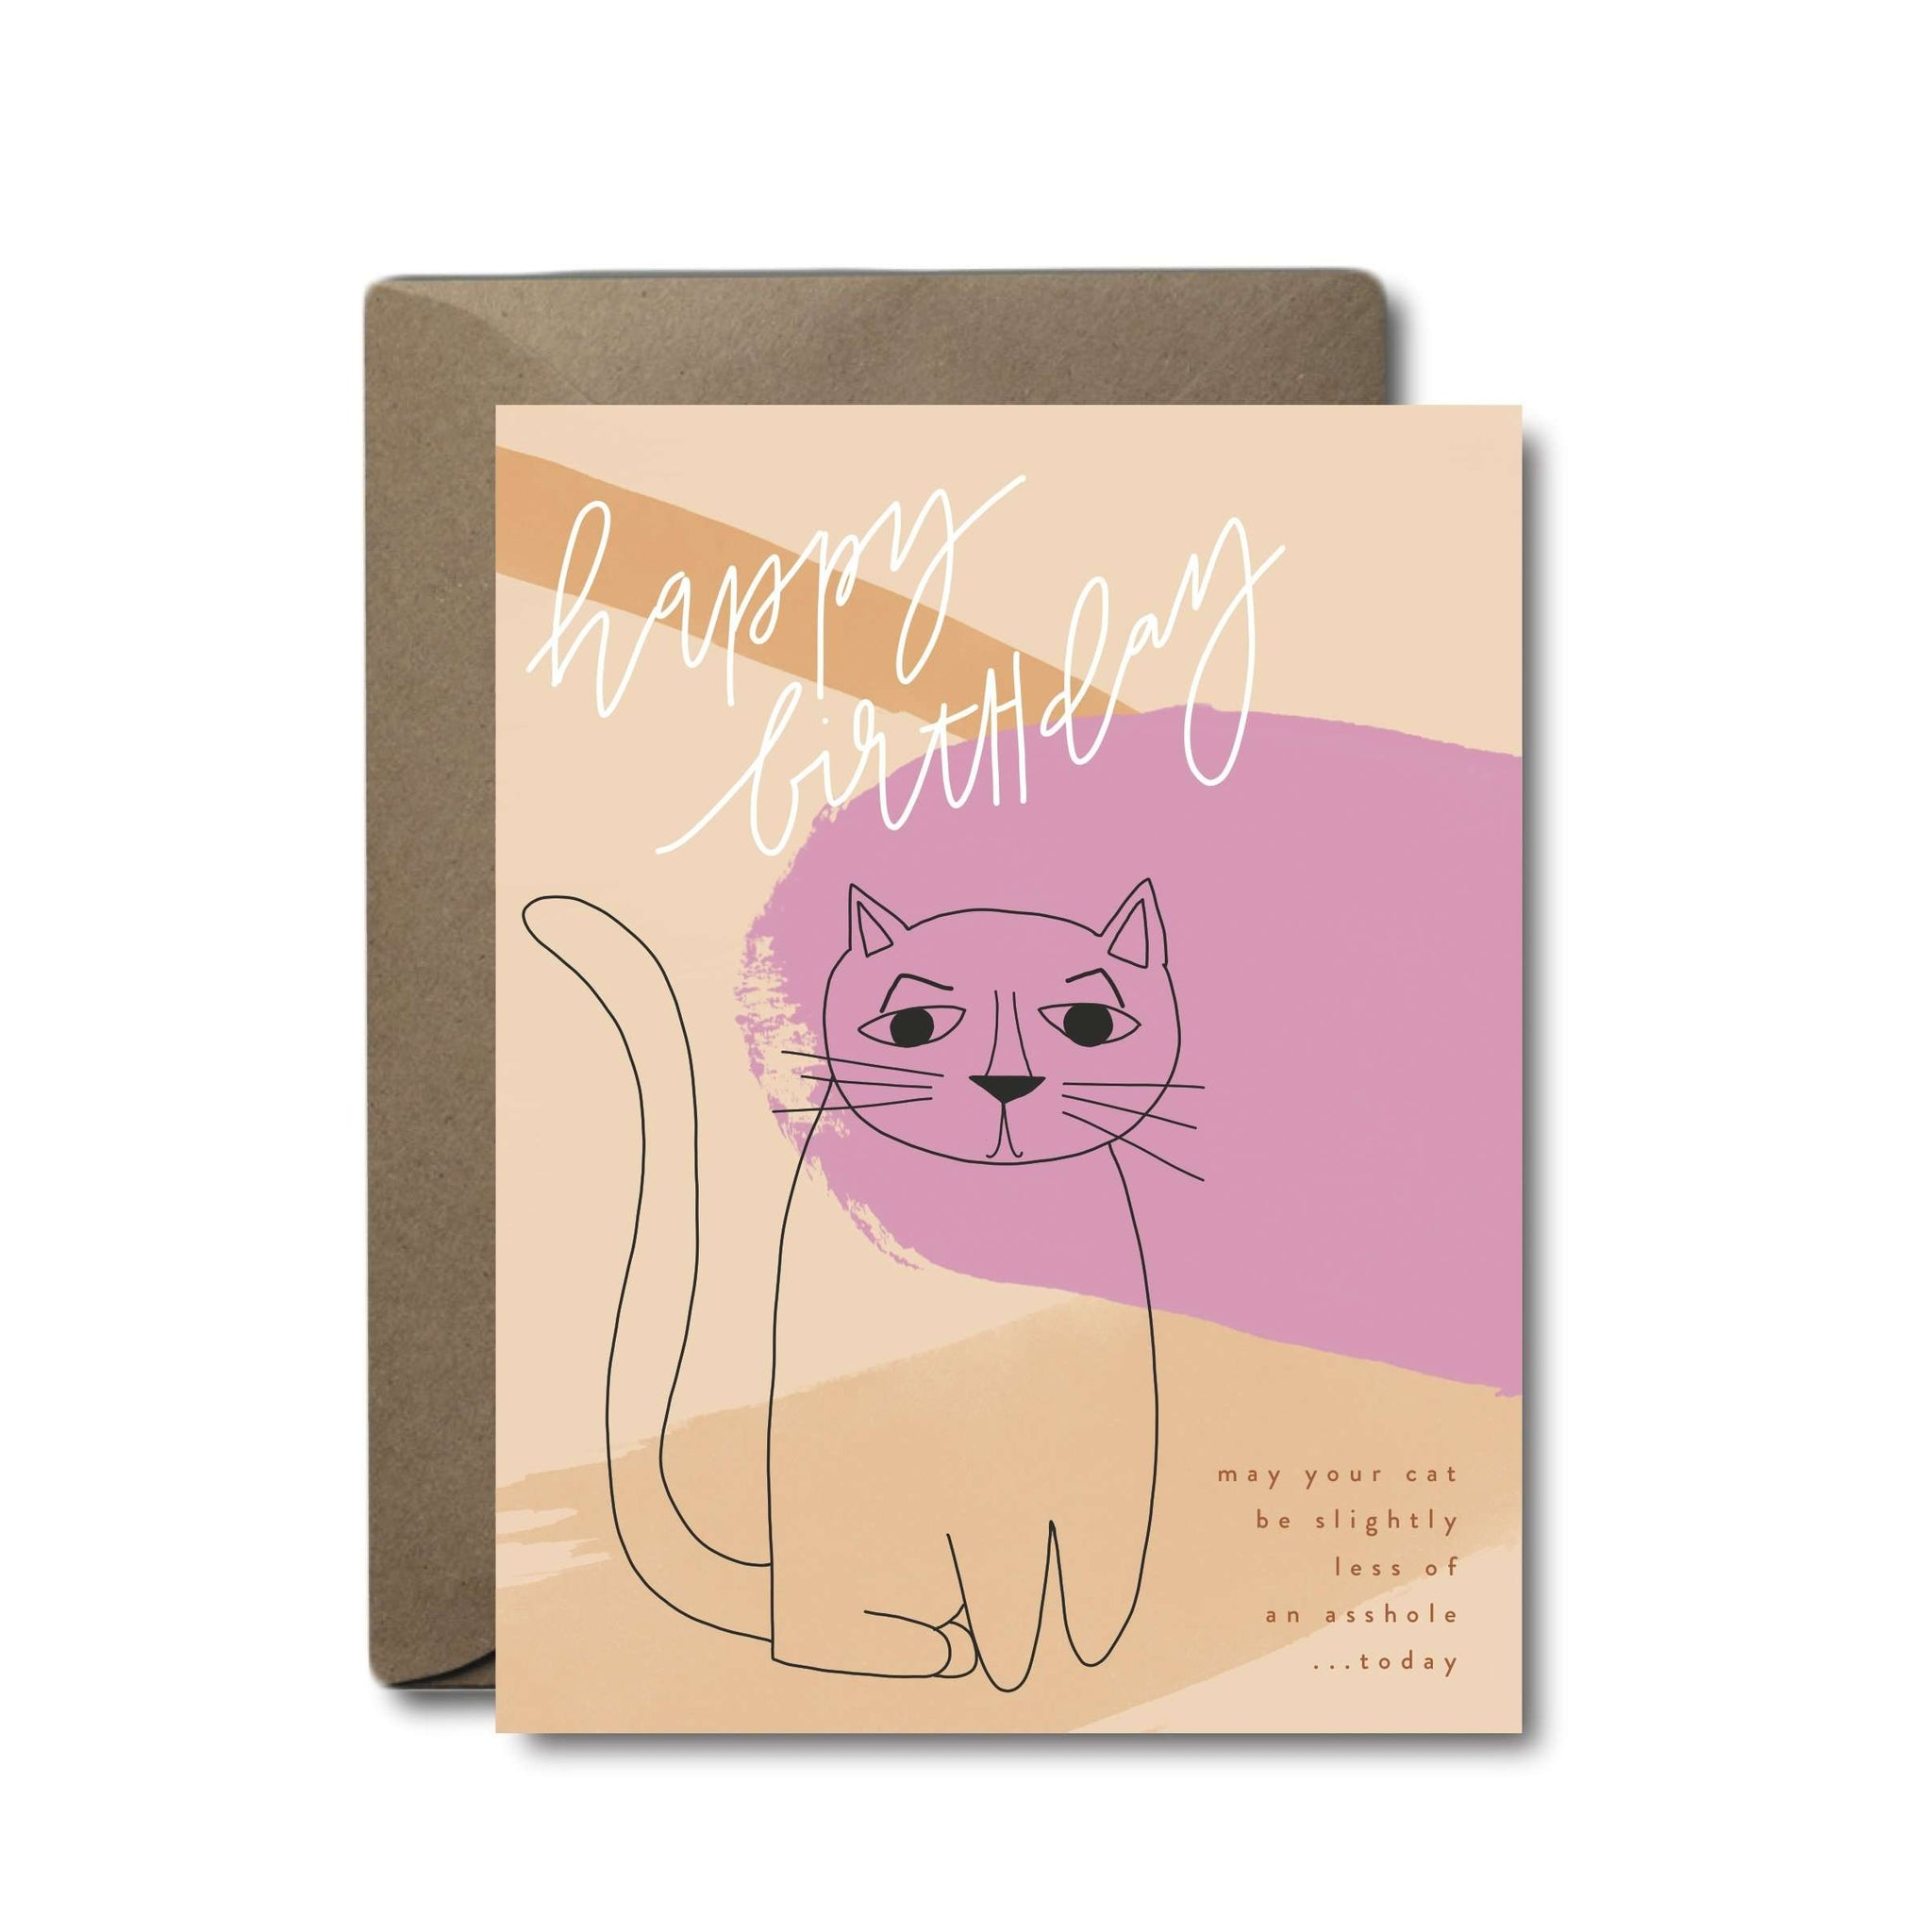 Asshole Cat Birthday Greeting Card | A2